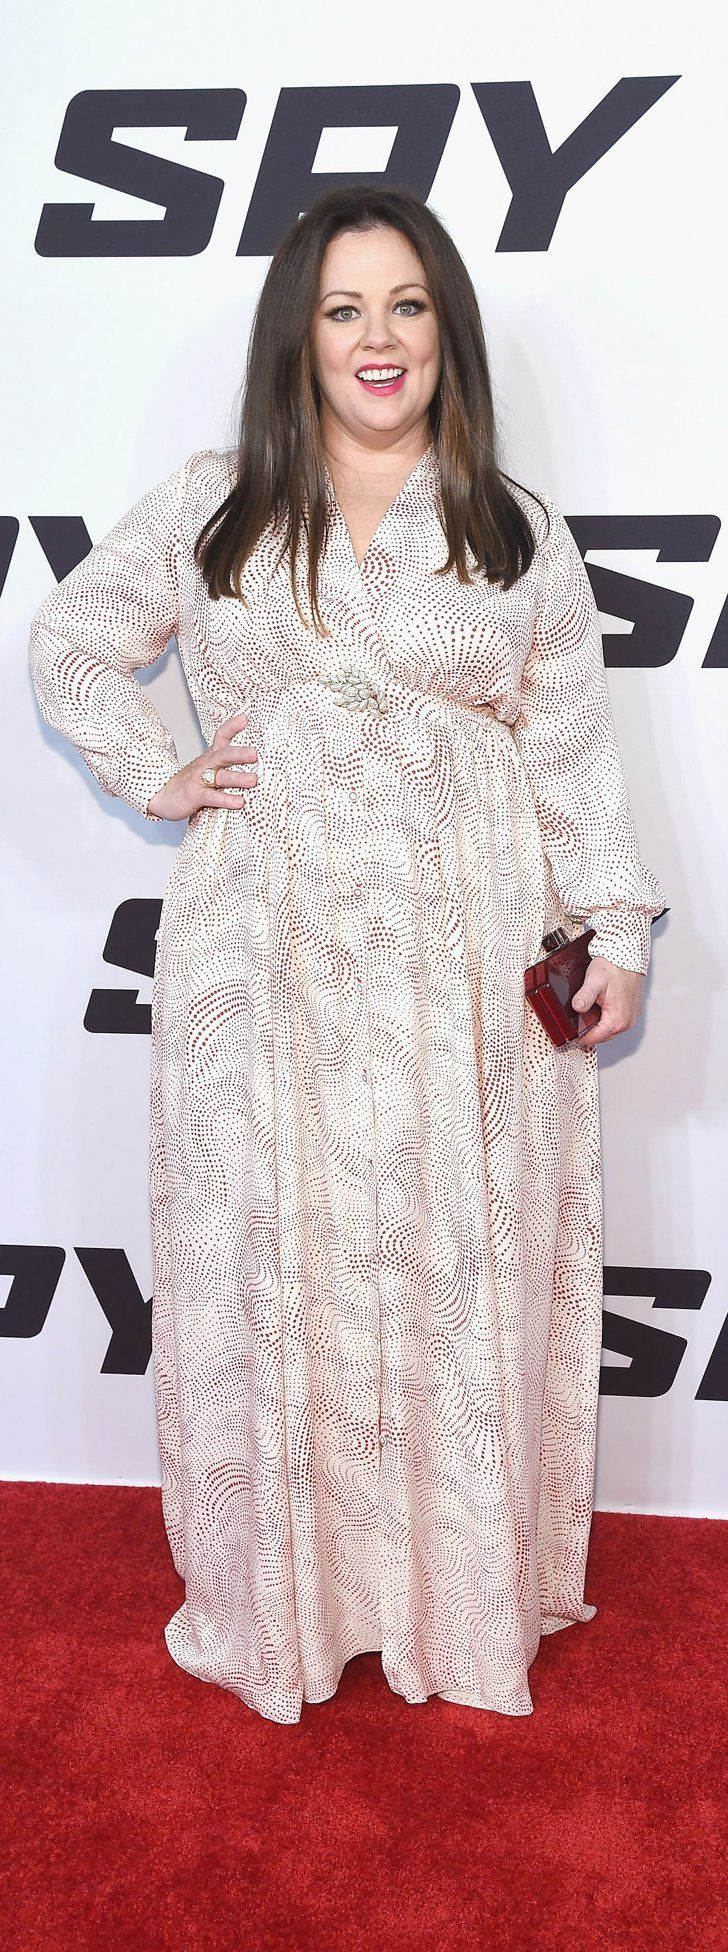 Why We Can't Wait to Shop Melissa McCarthy's Clothing Line